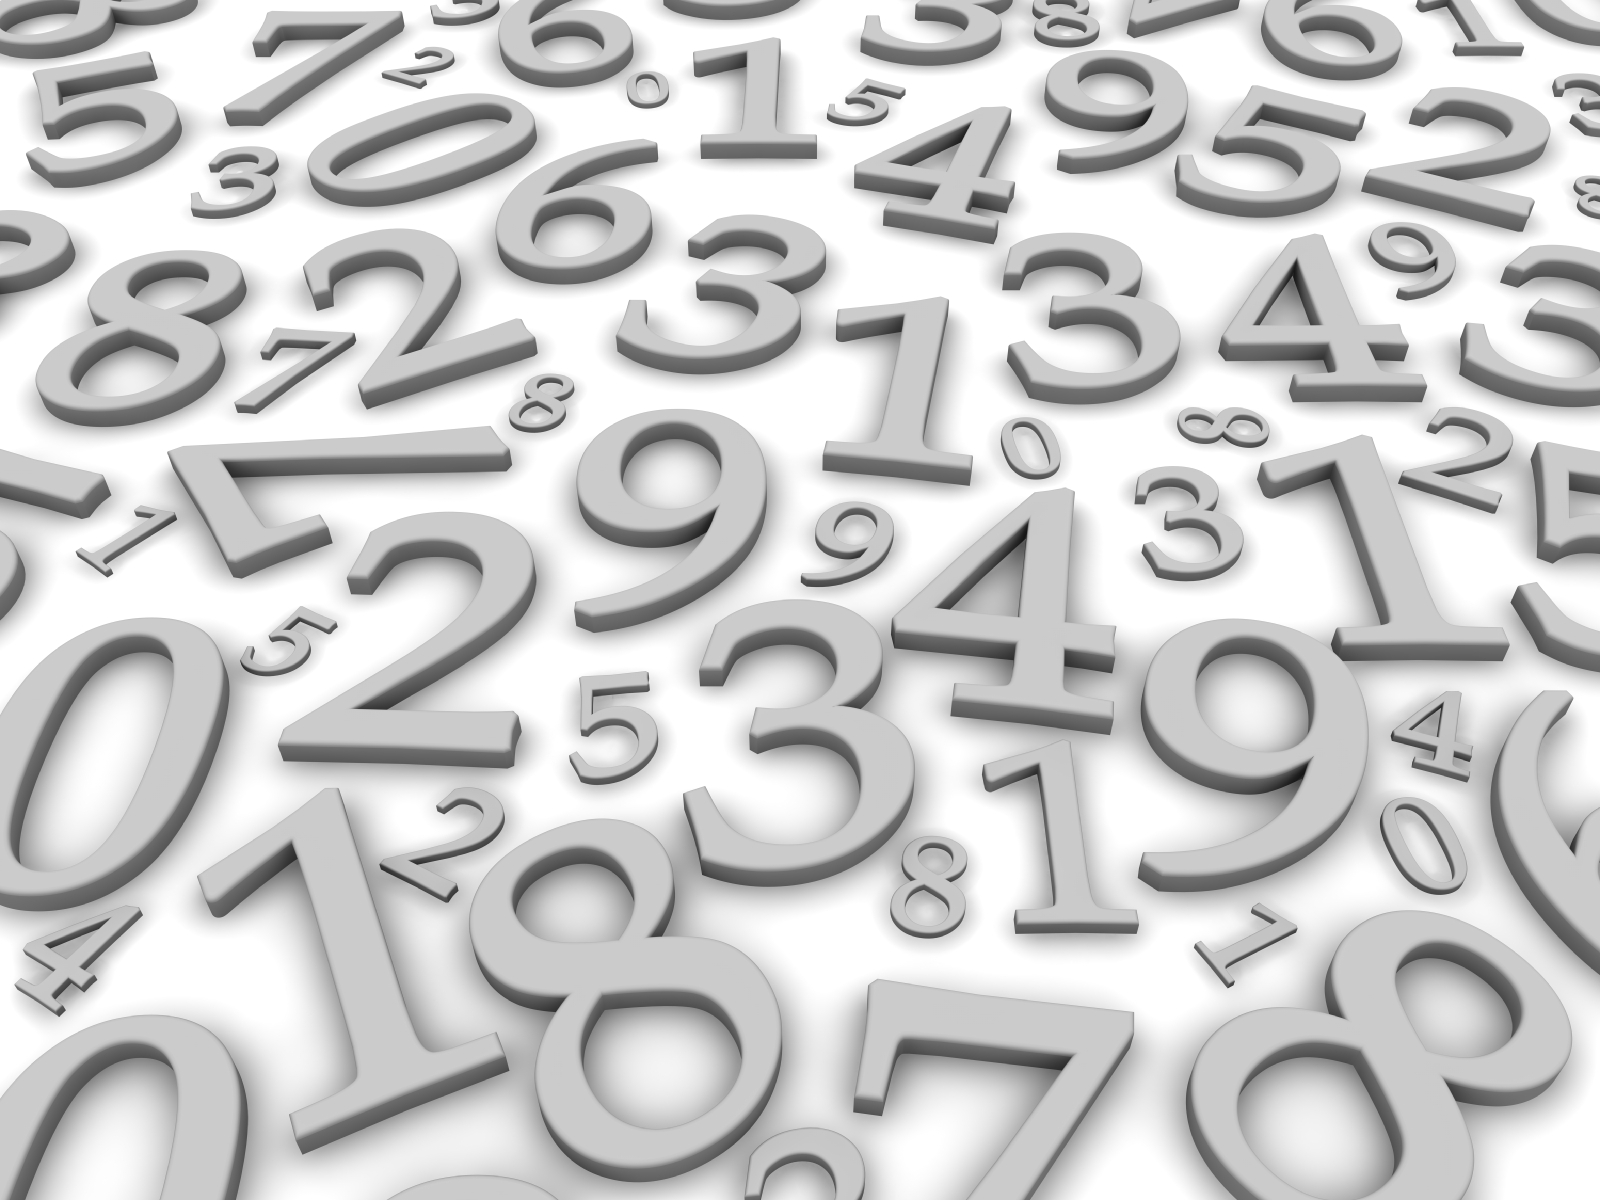 Numbers: Should translators get them right?